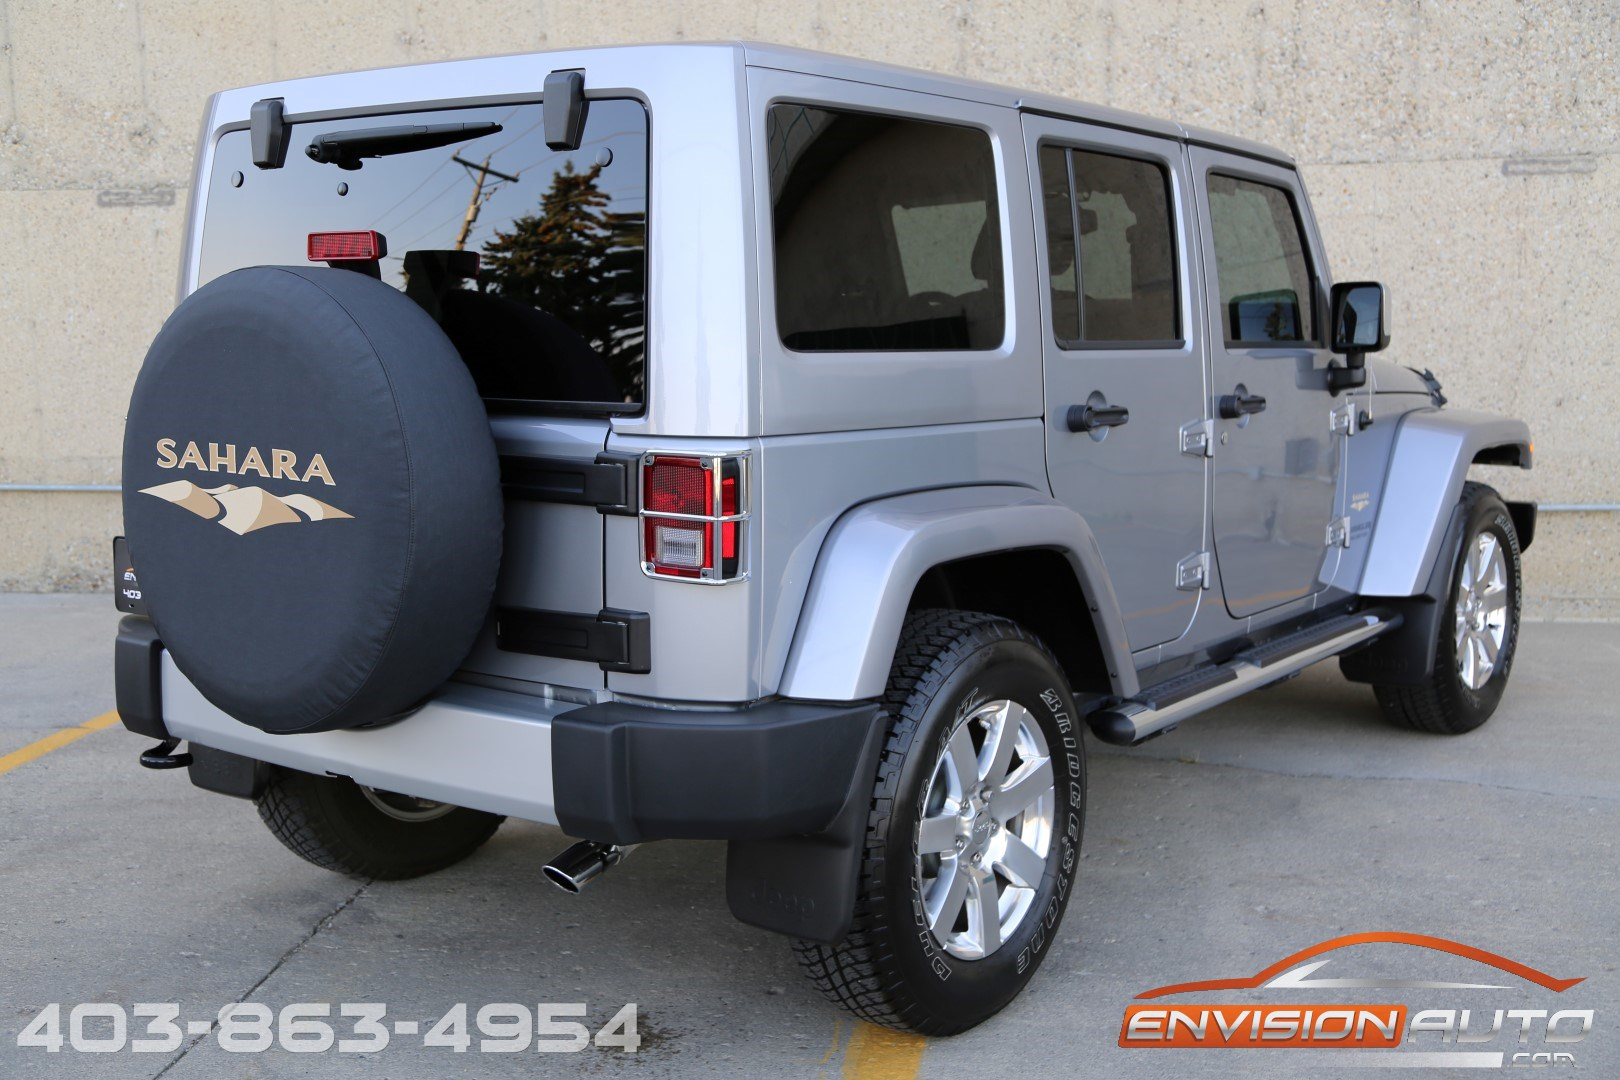 2015 jeep wrangler unlimited sahara 1 owner 4 300kms mint envision auto. Black Bedroom Furniture Sets. Home Design Ideas